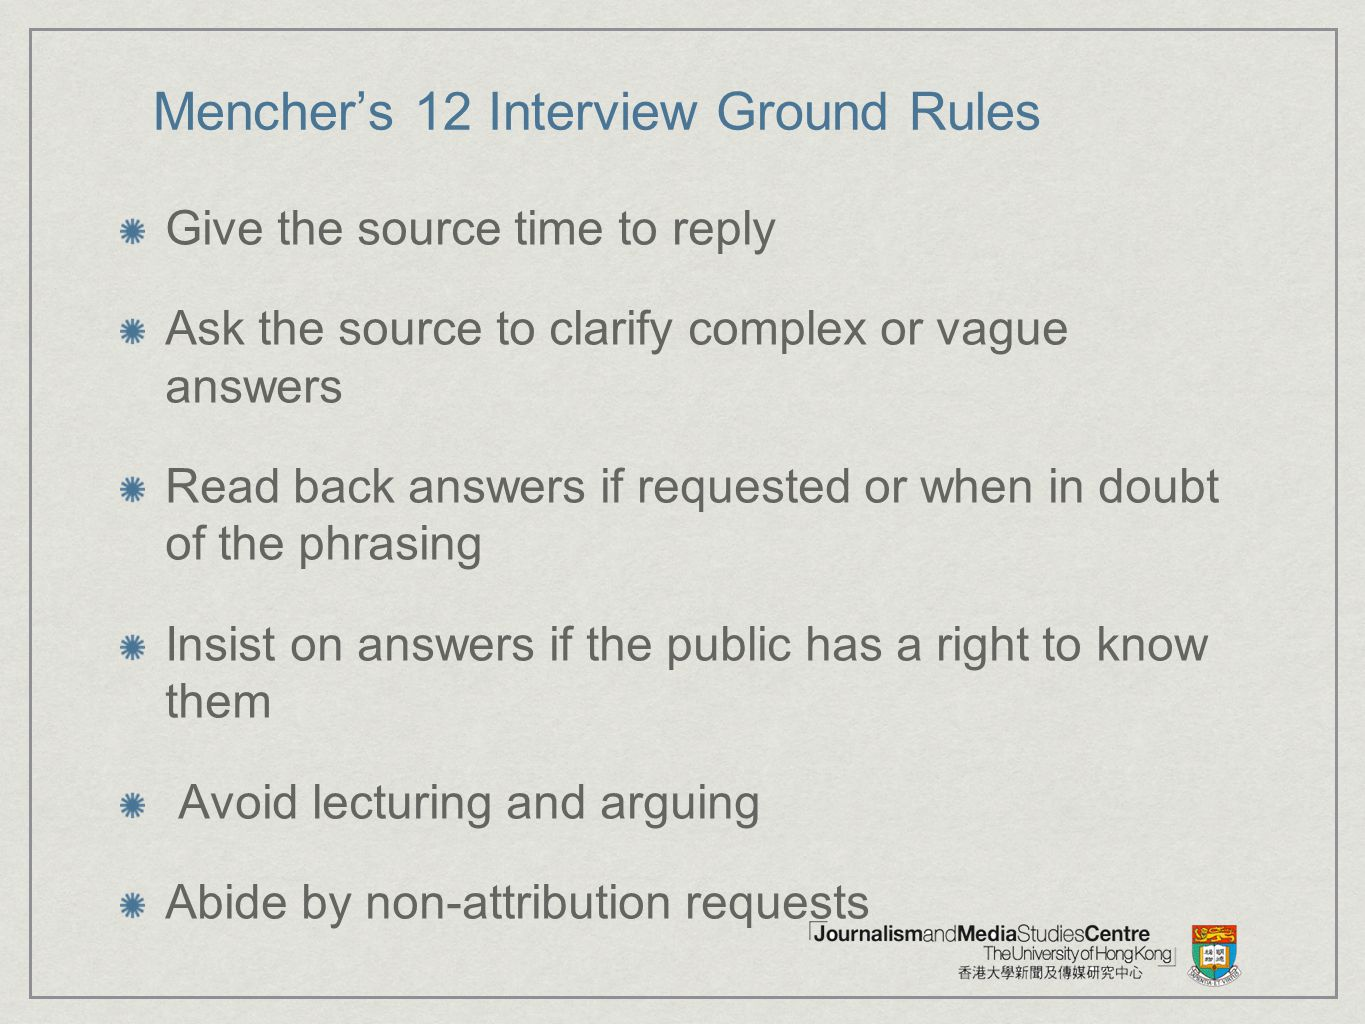 Mencher's 12 Interview Ground Rules